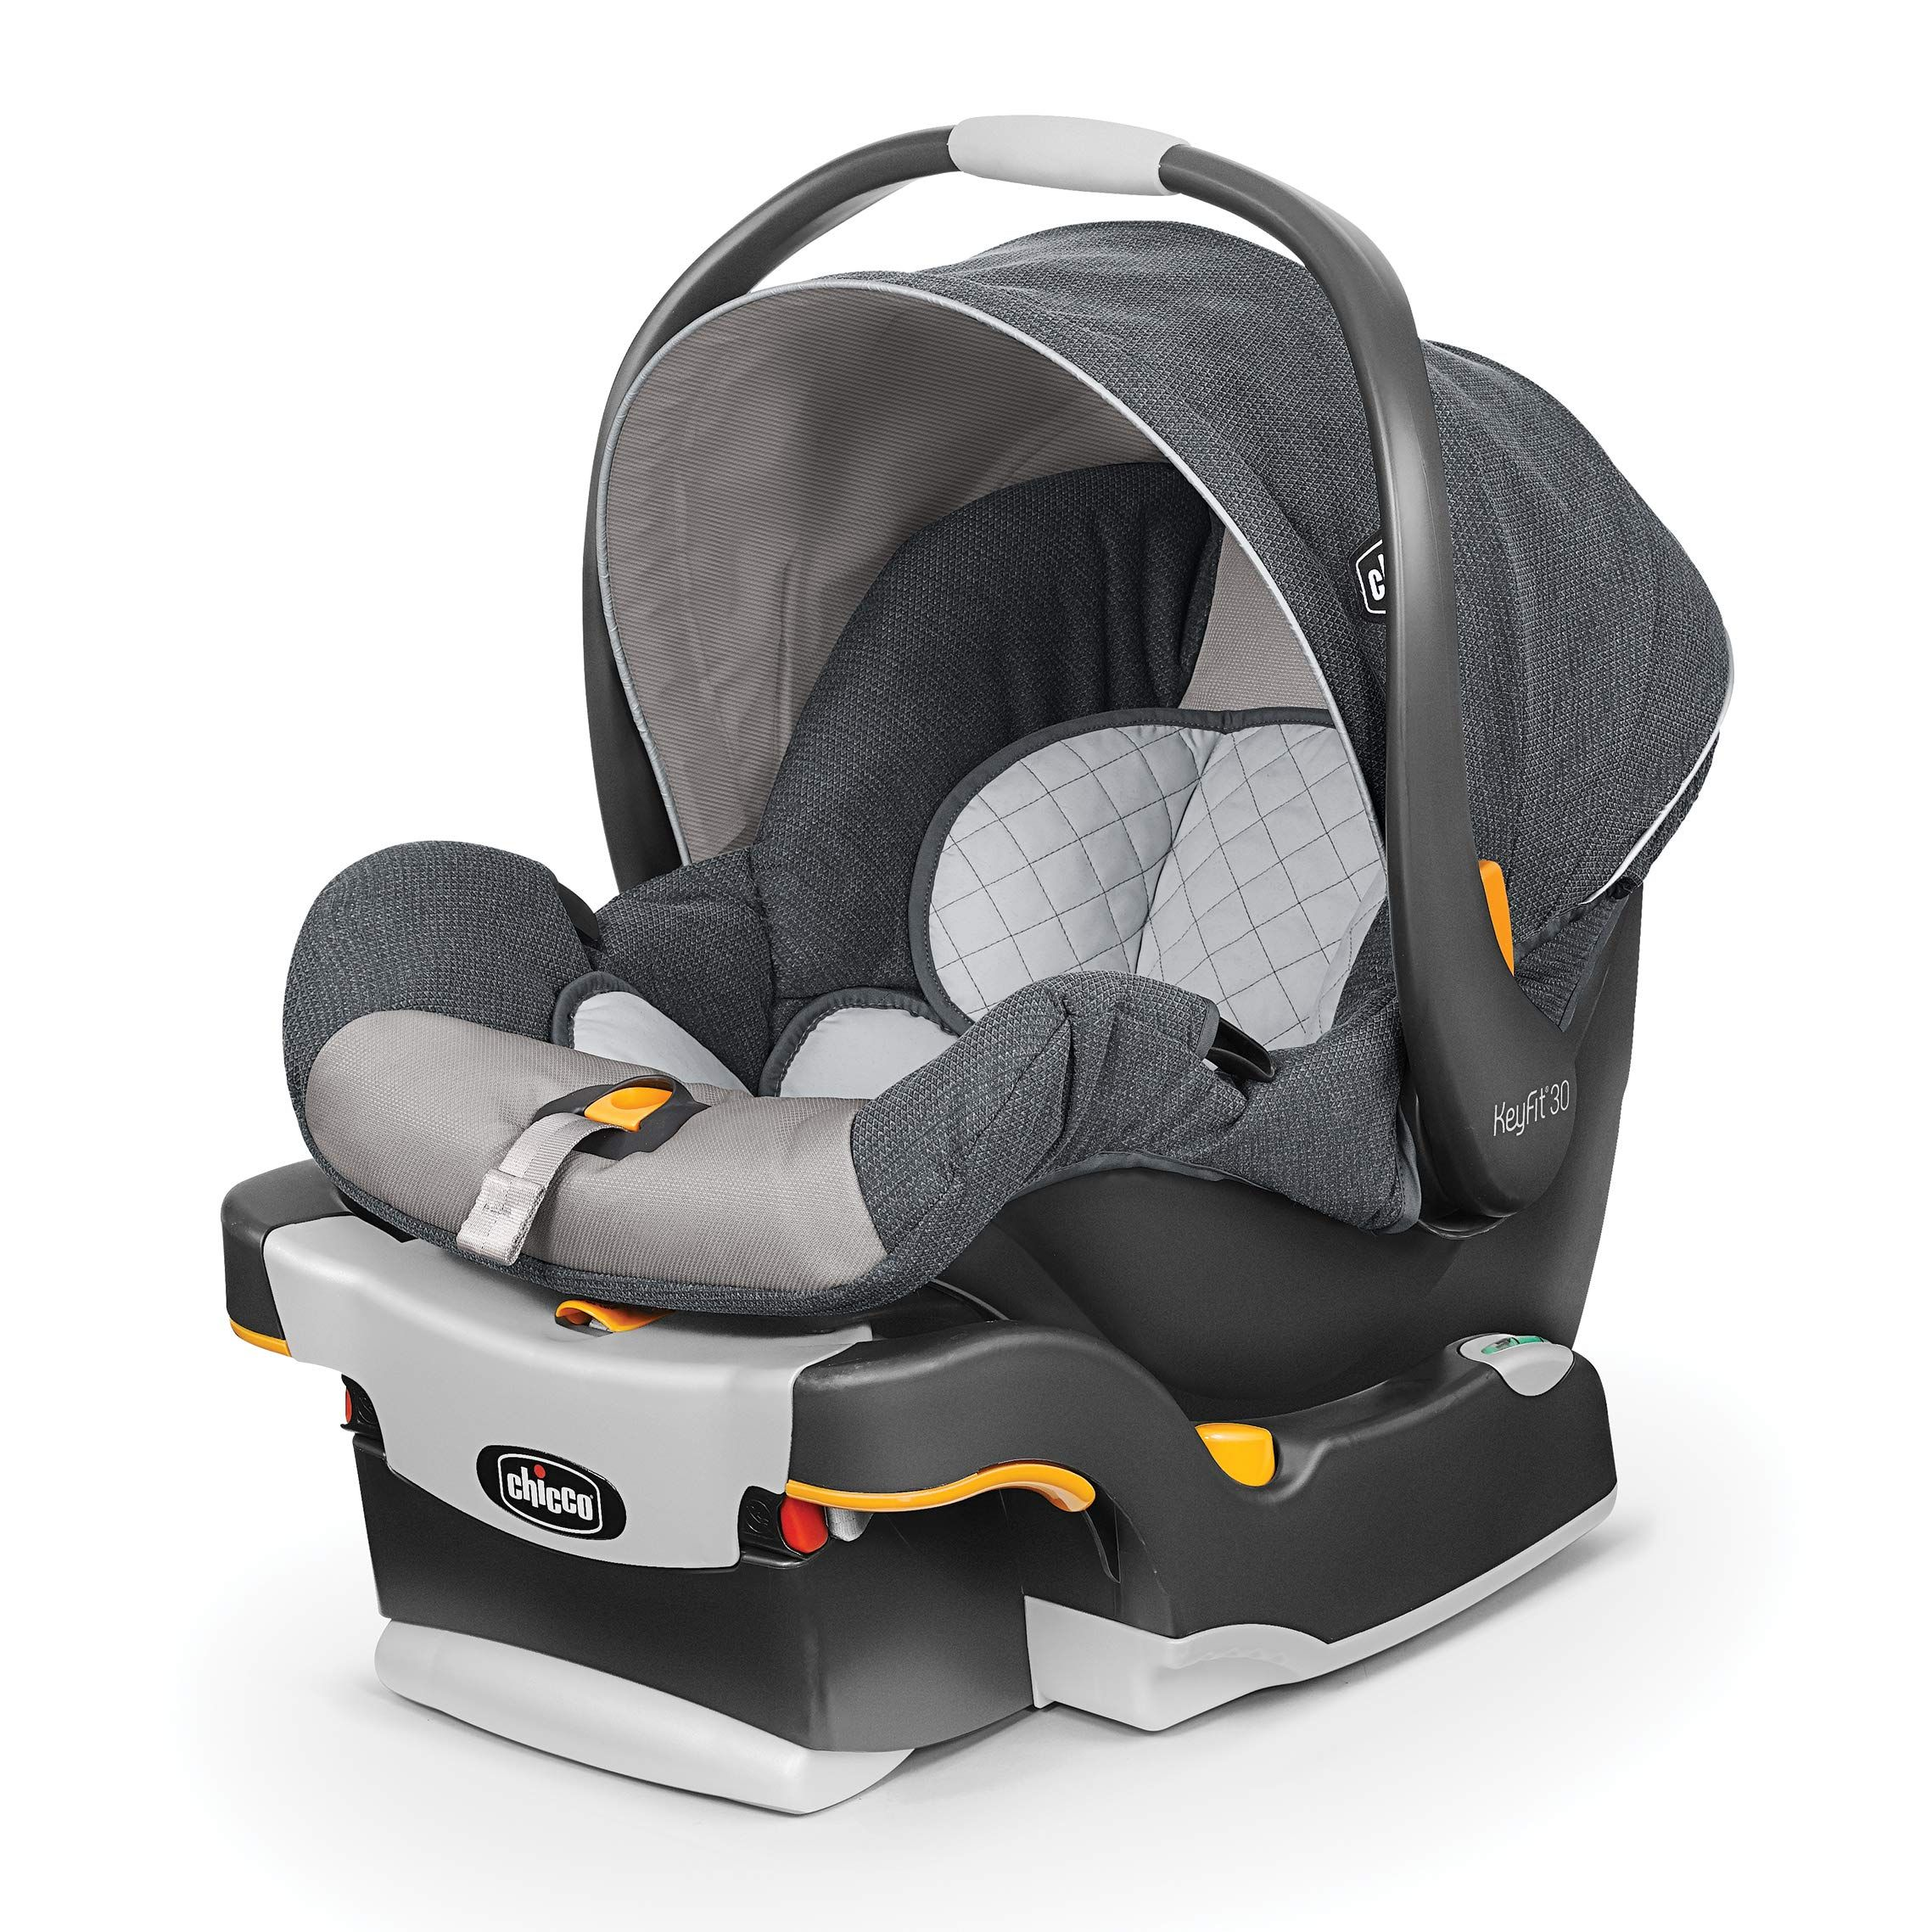 Chicco KeyFit 30 Infant Car Seat Baby car seats, Chicco